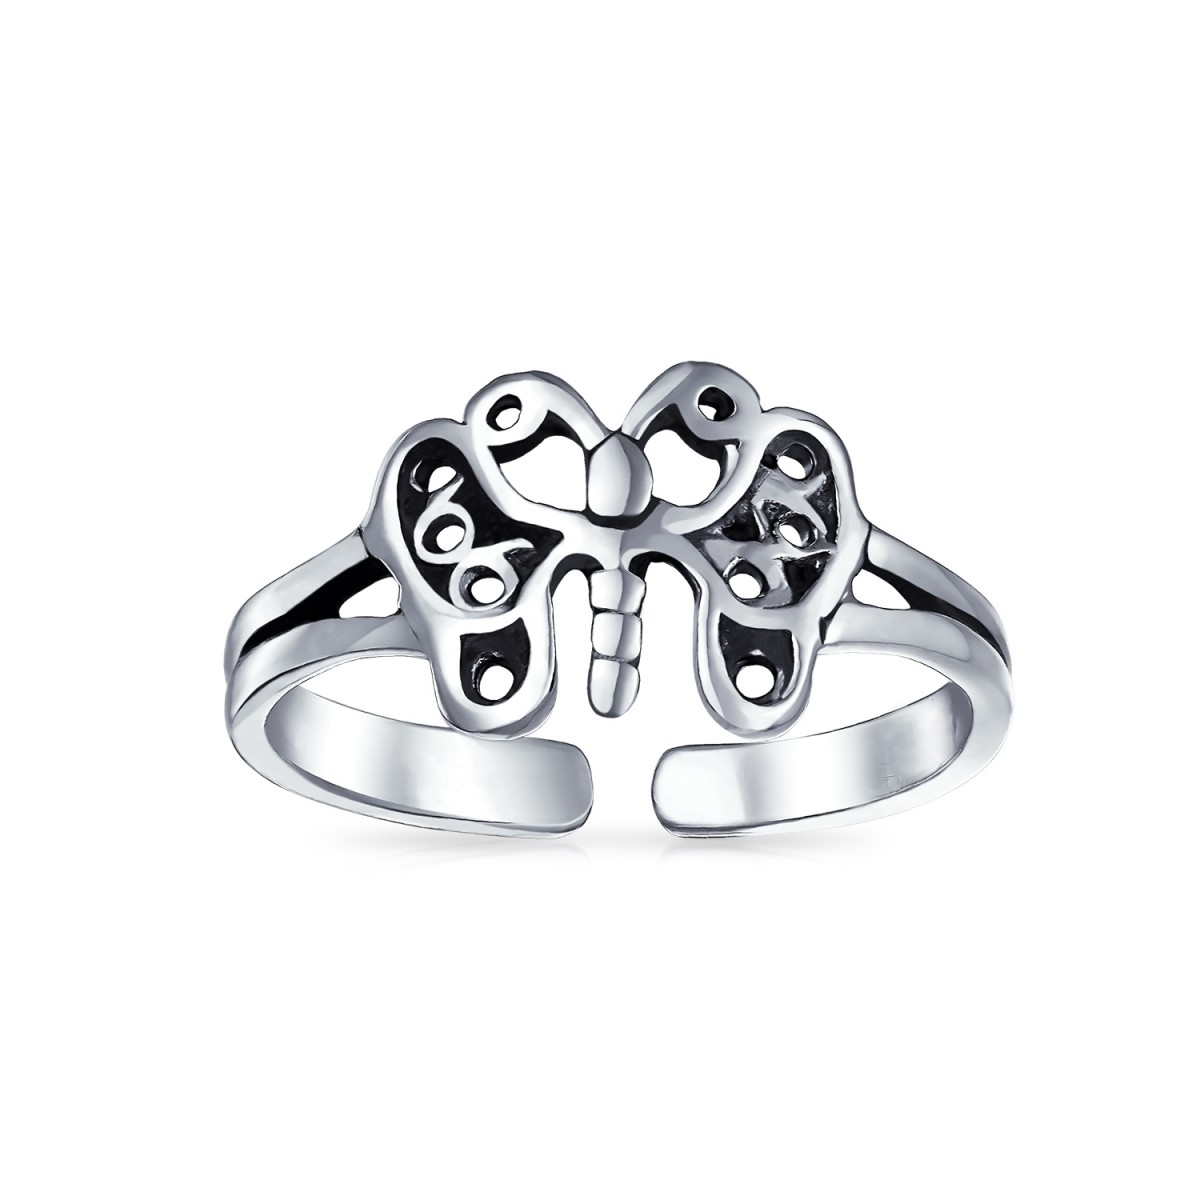 Filigree Butterfly Toe Ring Adjustable Sterling Silver Midi Rings In Most Popular Butterfly Toe Rings (Gallery 5 of 15)